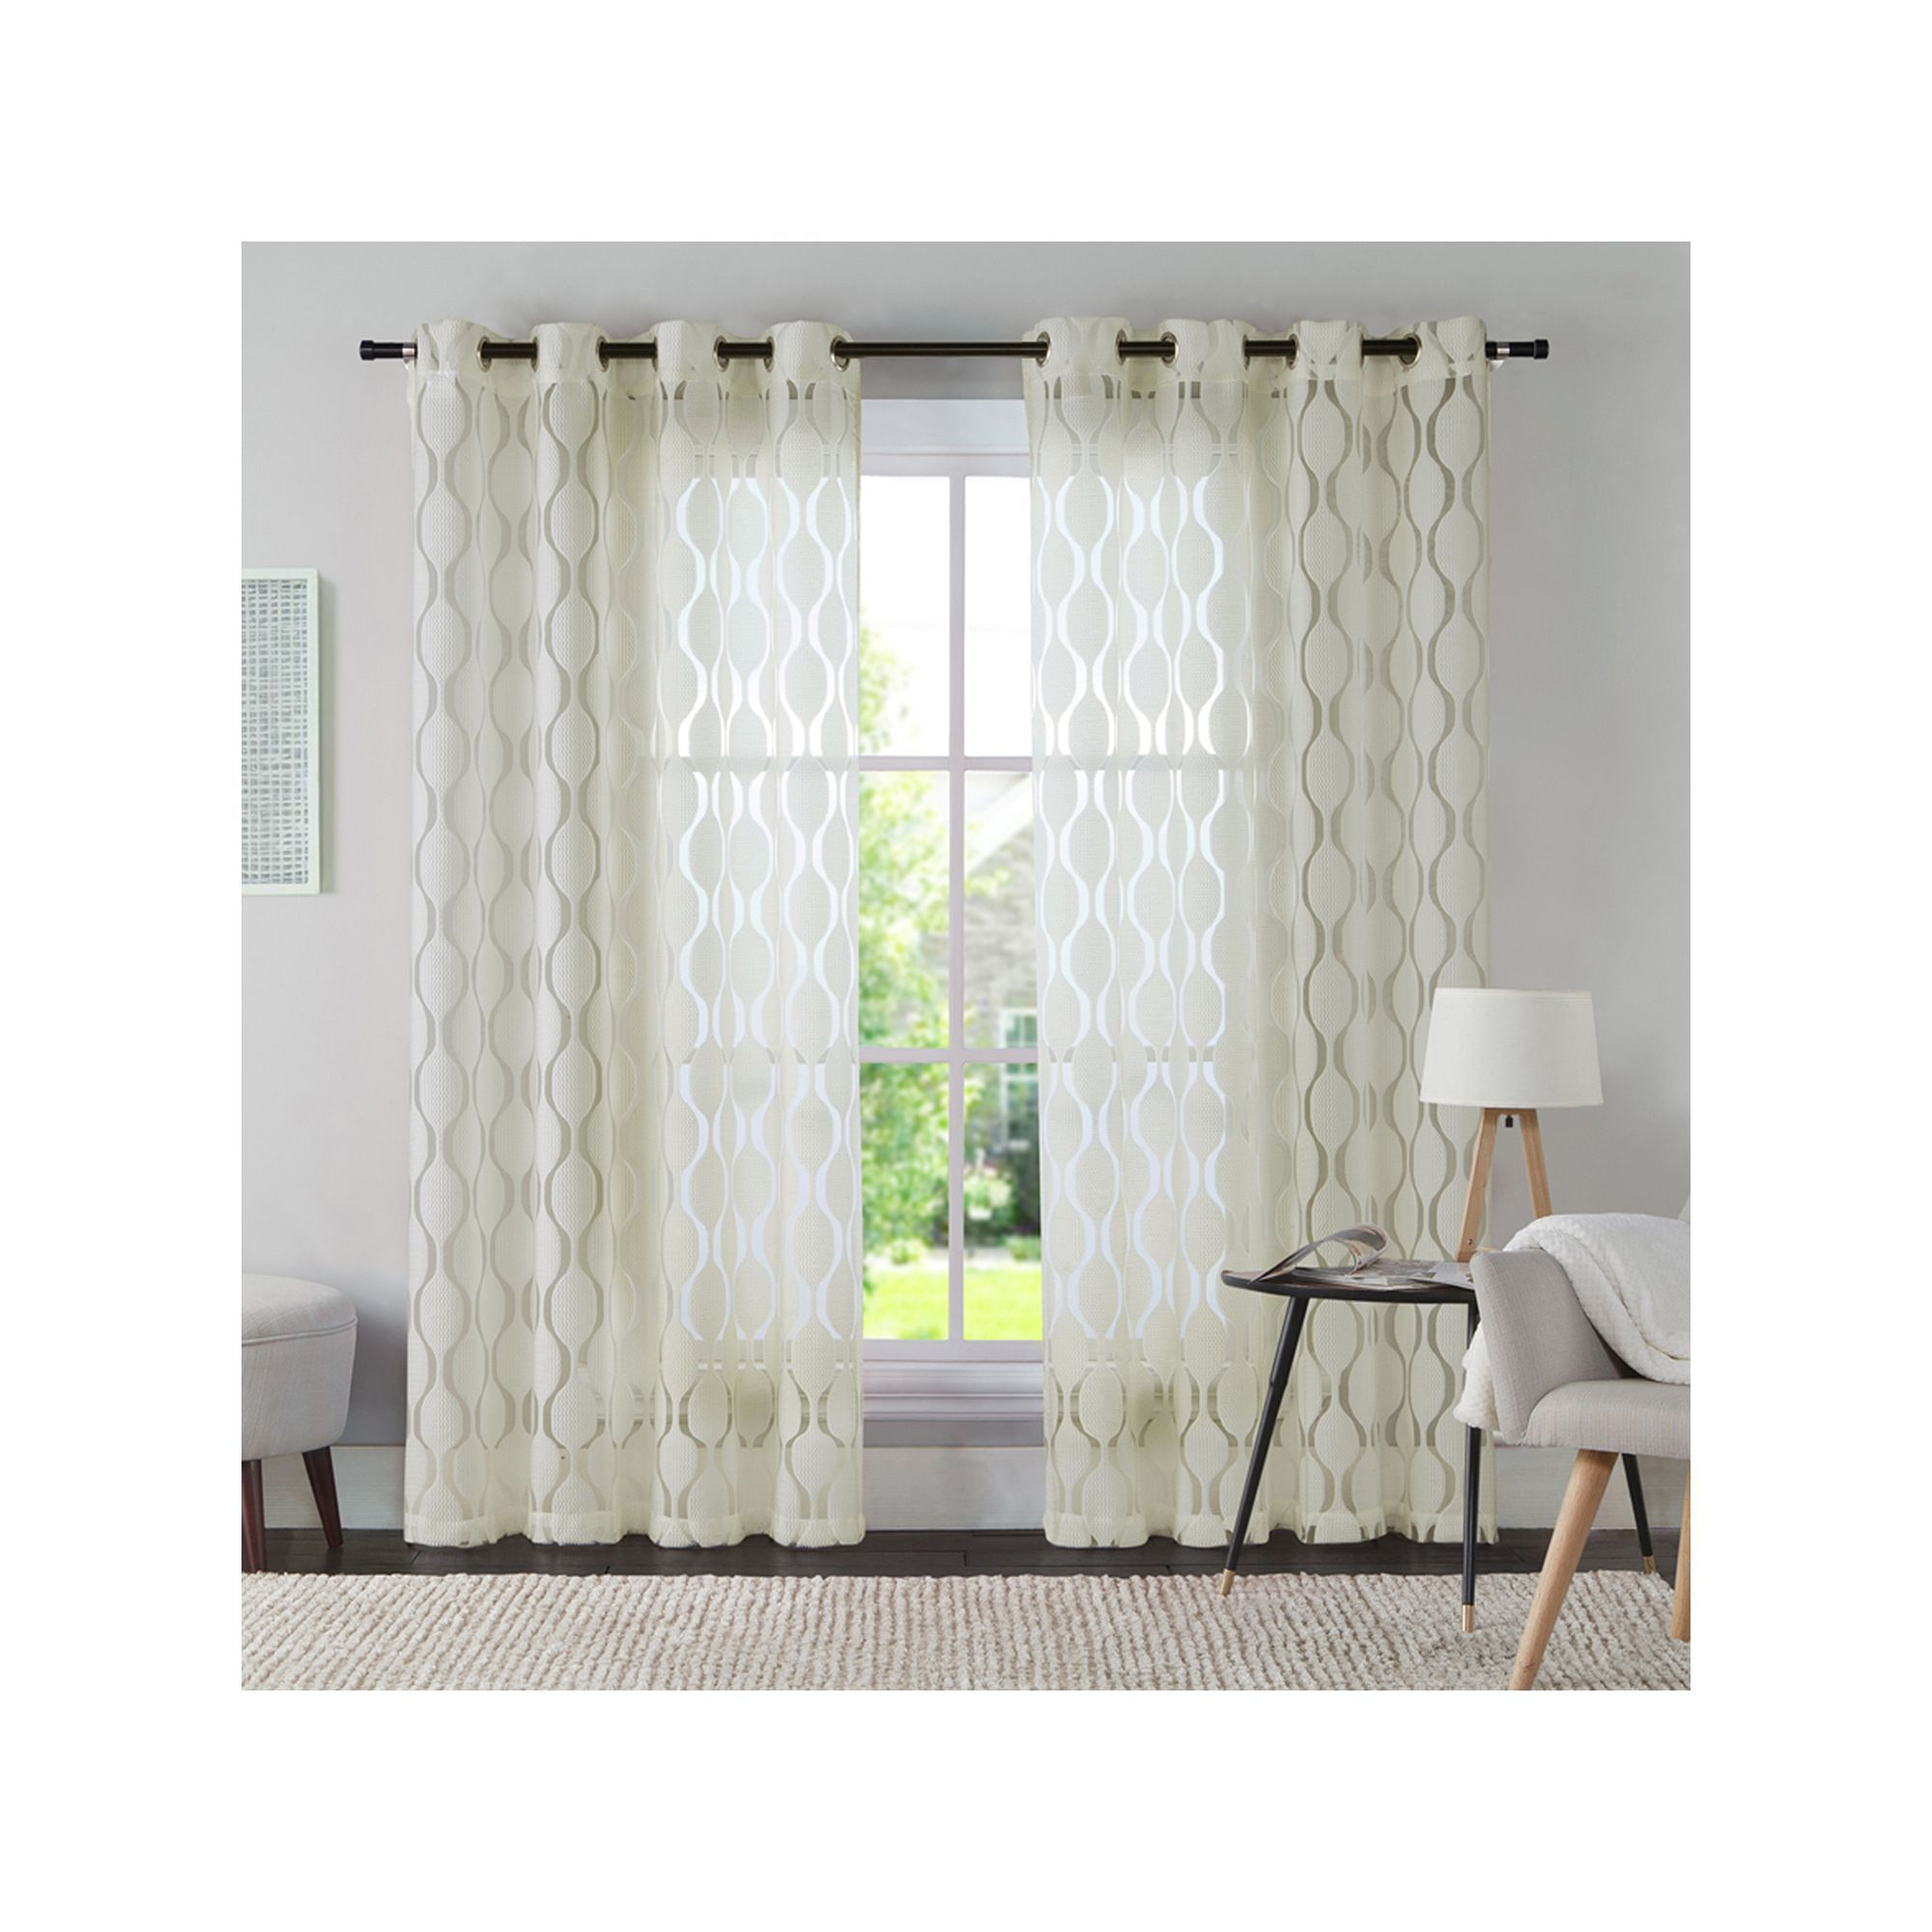 Bed bath and beyond window shades  vcny panel aria window curtain white curtainsideasforbedroom